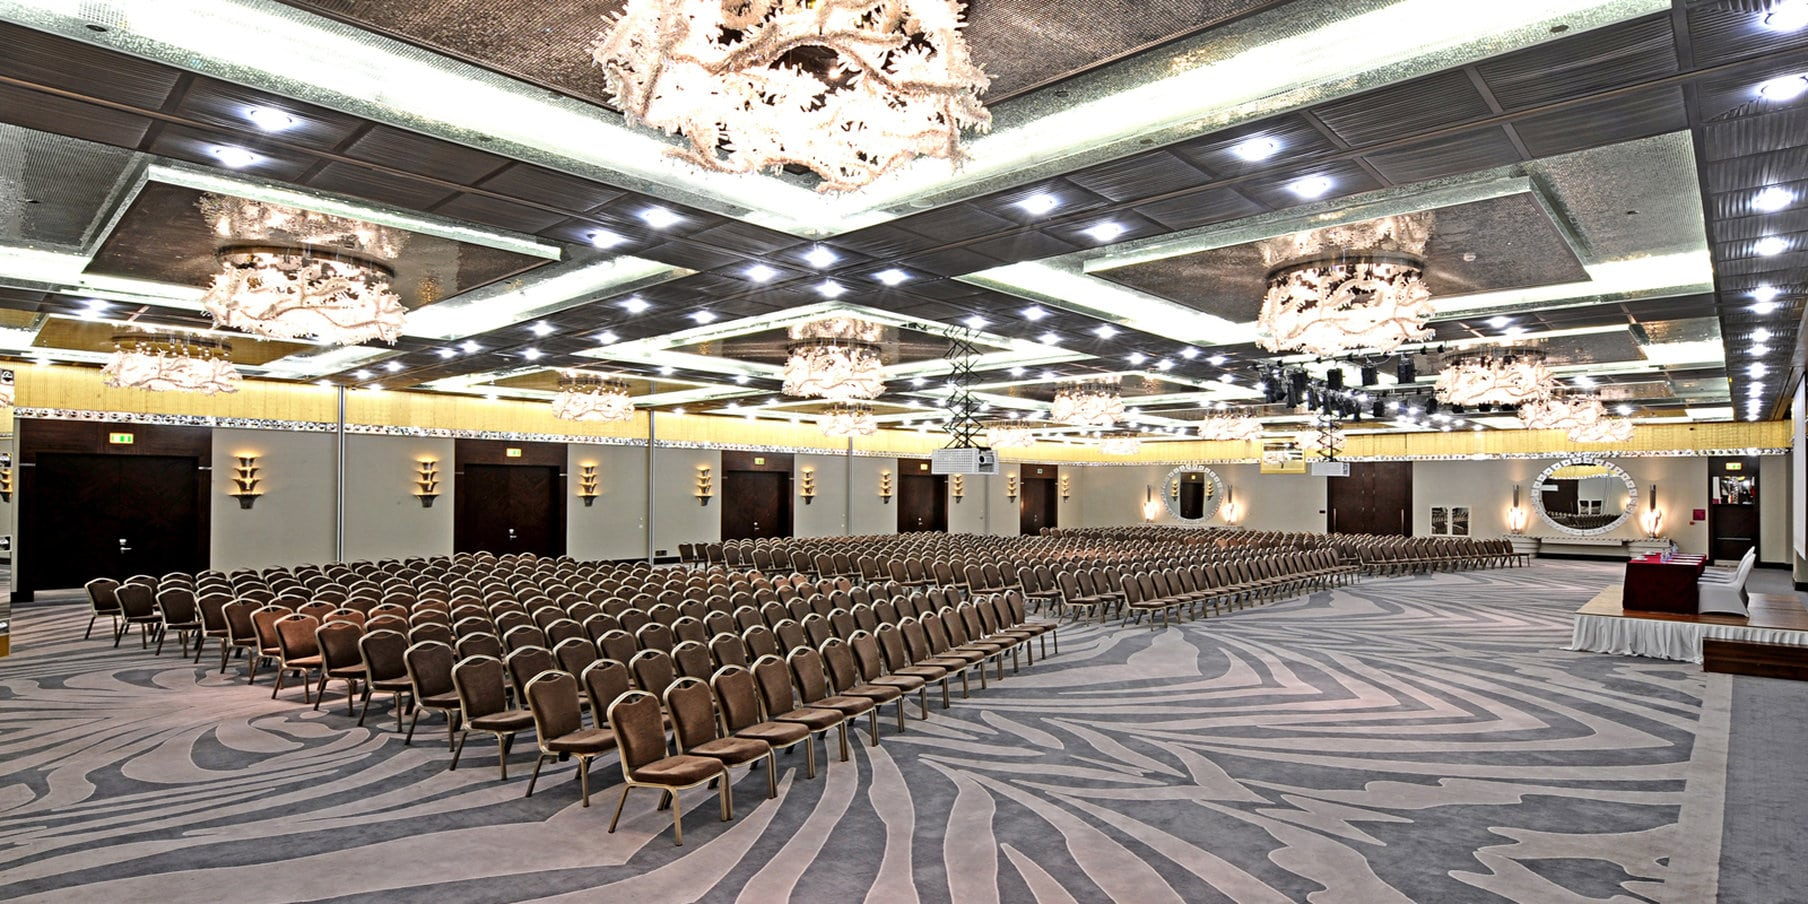 Crowne Plaza Convention Center & Thermal Spa